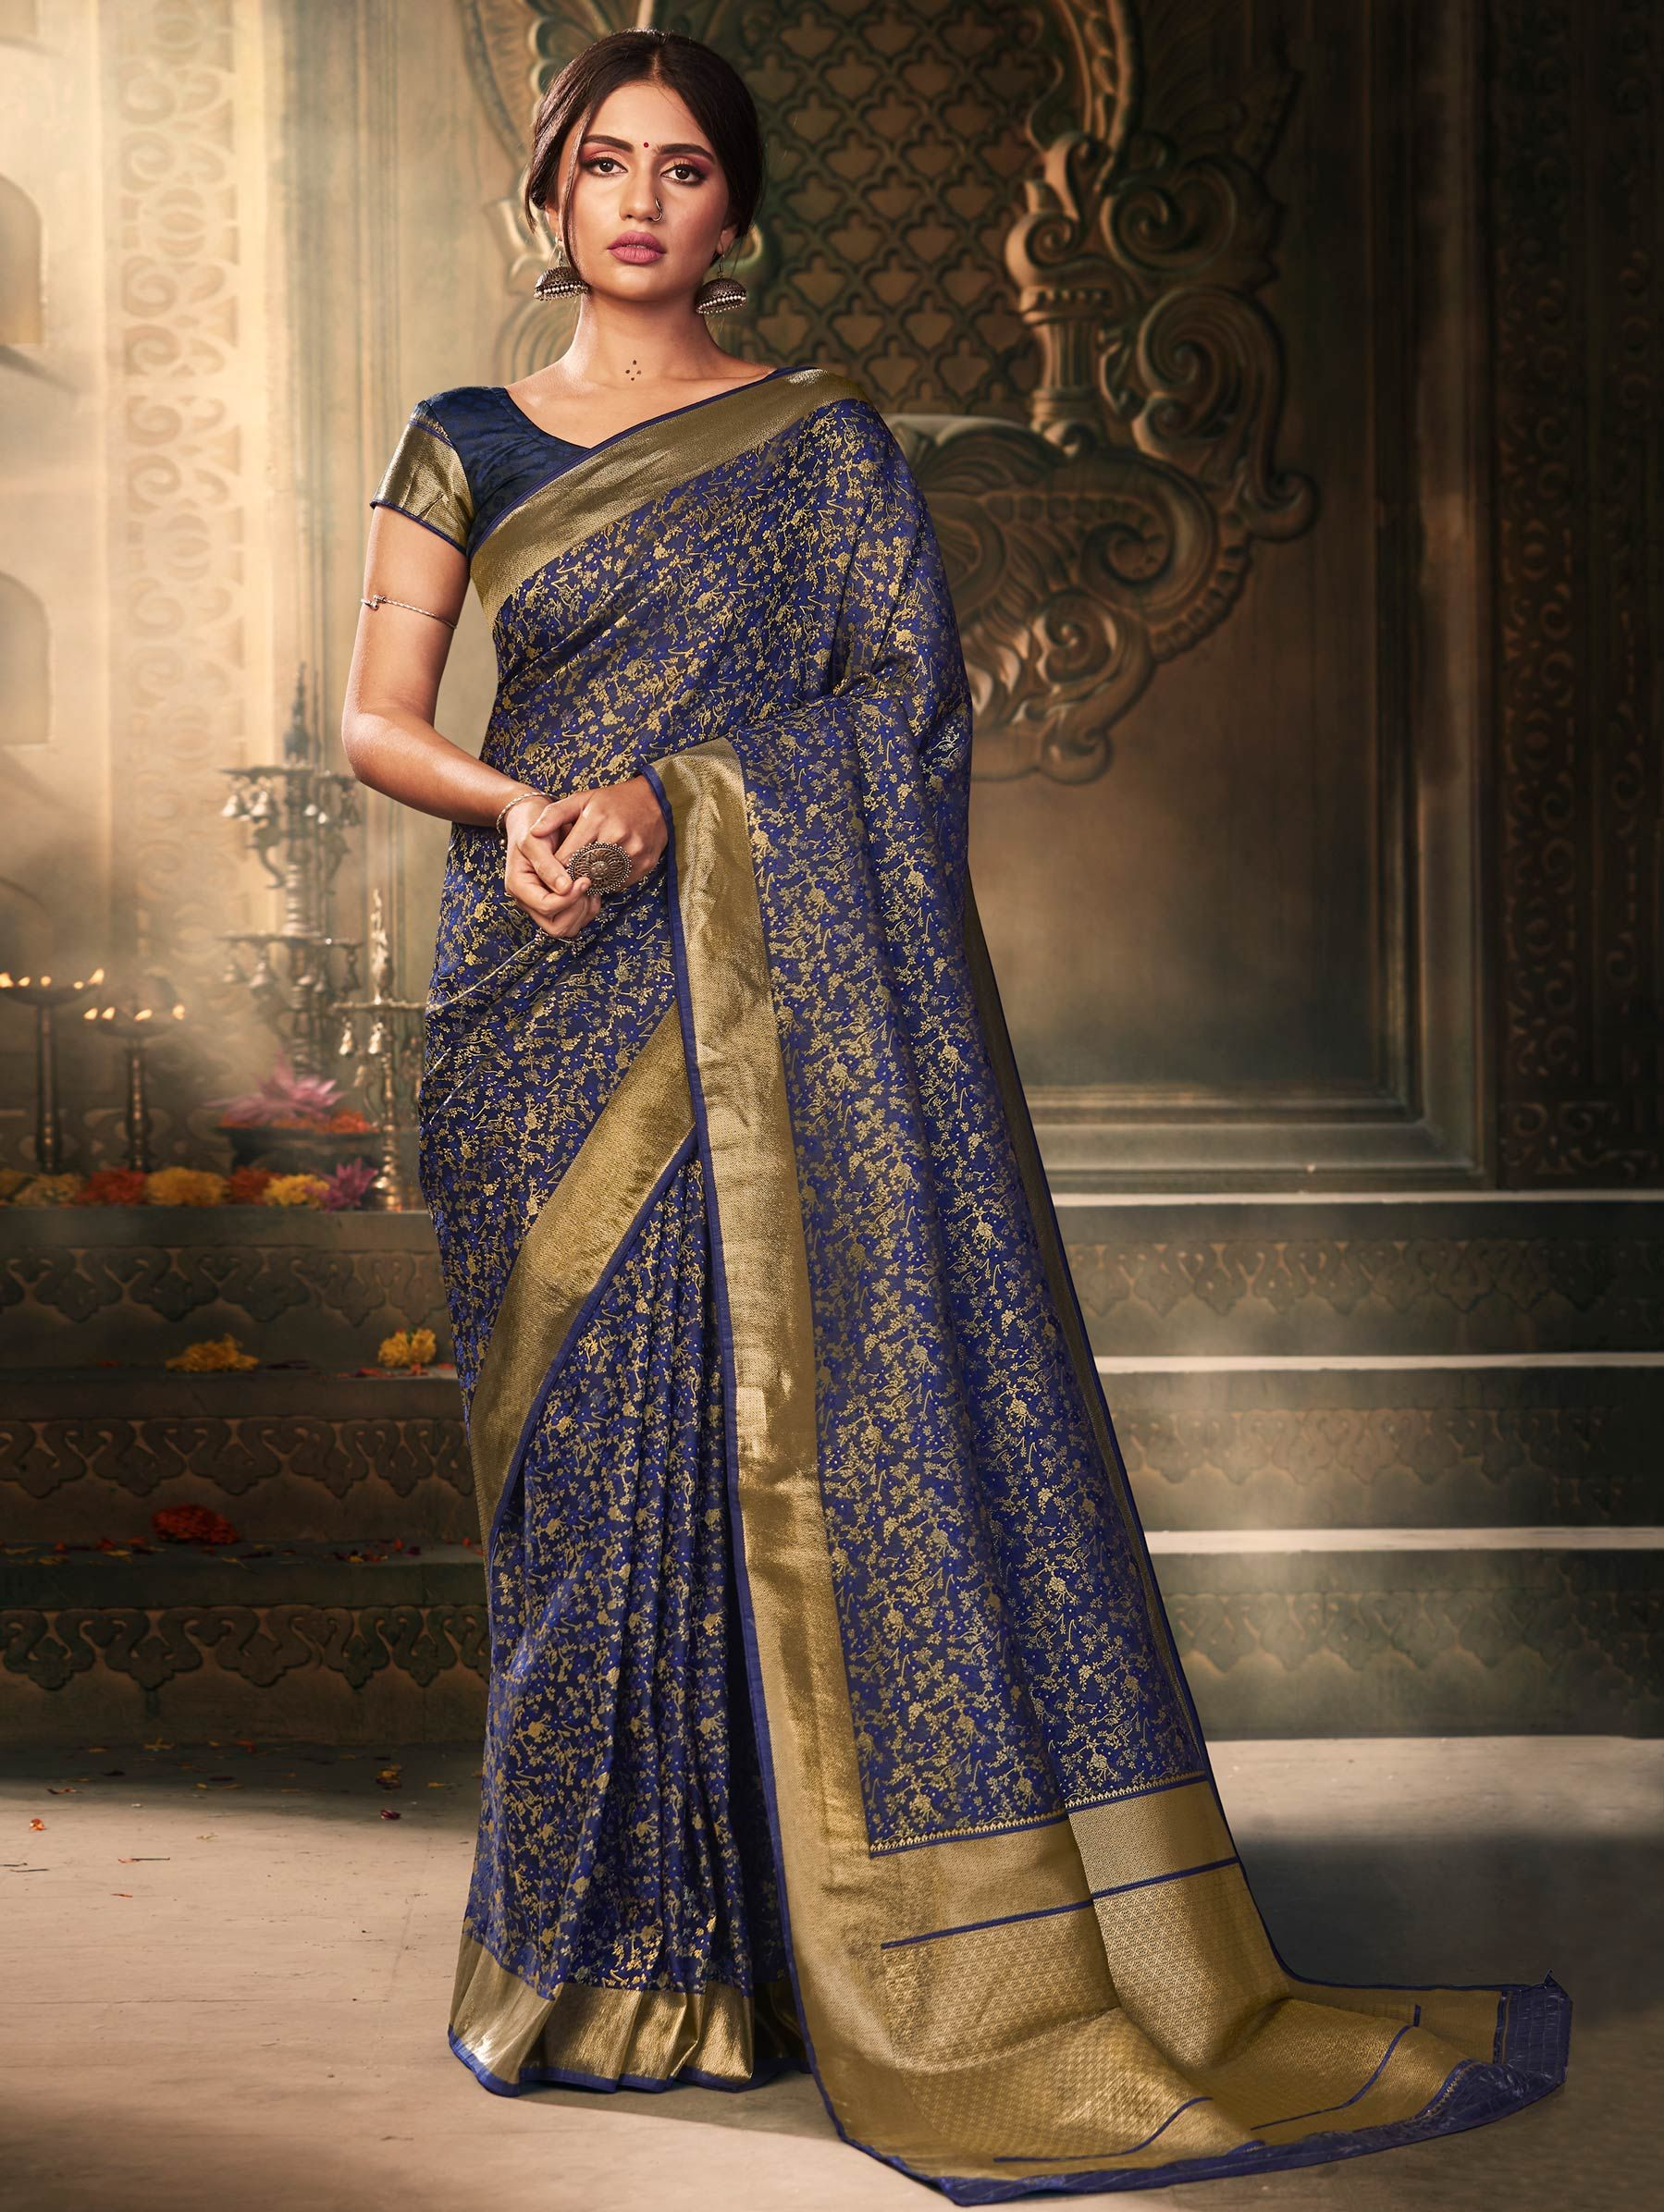 Navy Blue Banarasi Silk Floral Woven Saree with Zari Gold Border and Pallu